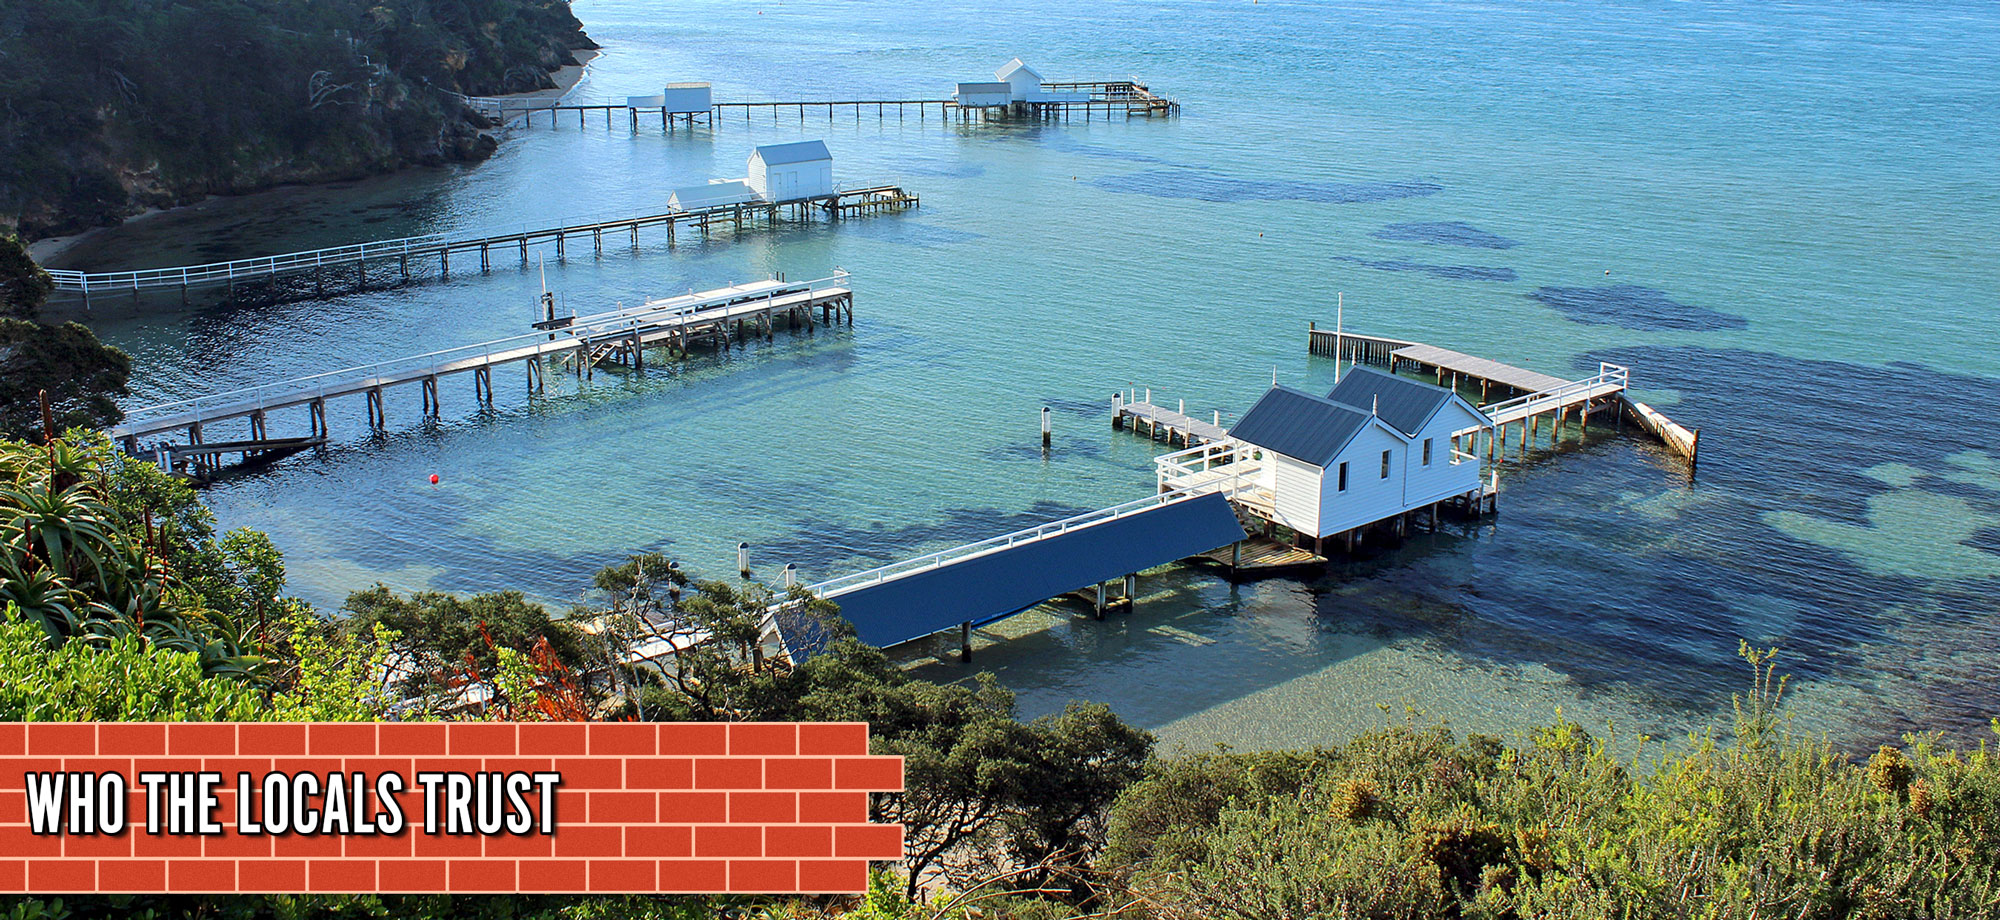 Bricklayers Mornington | Bricklaying Mornington Peninsula | Bricklayers Mornington | Blocklayers Mornington | Bricklaying Company Mornington Peninsula | Mornington Peninsula Brick & Blocklaying